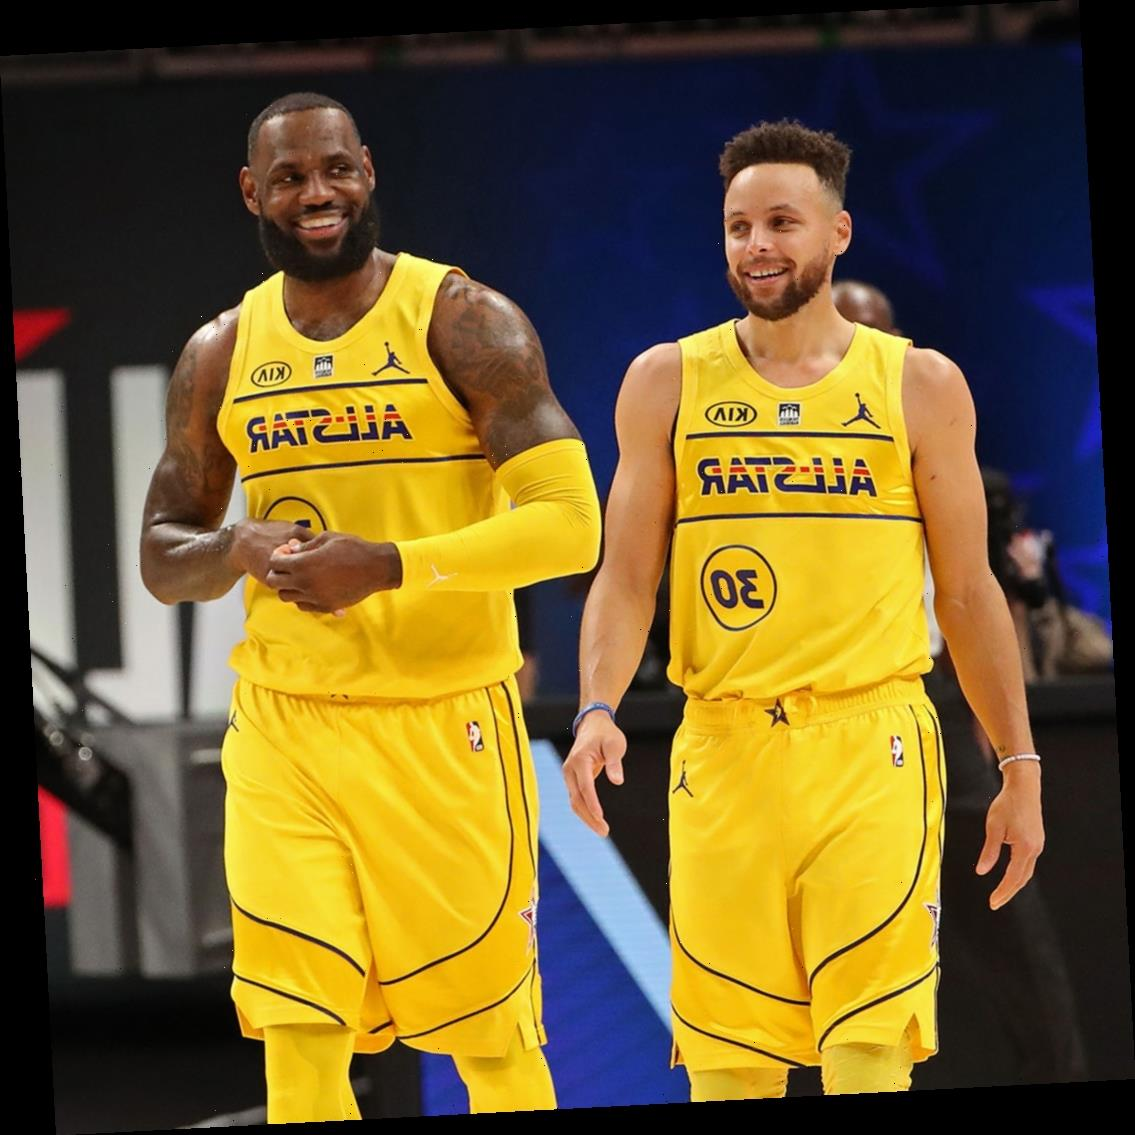 LeBron James and Stephen Curry Praise Each Other After Playing on the Same Team for the First Time